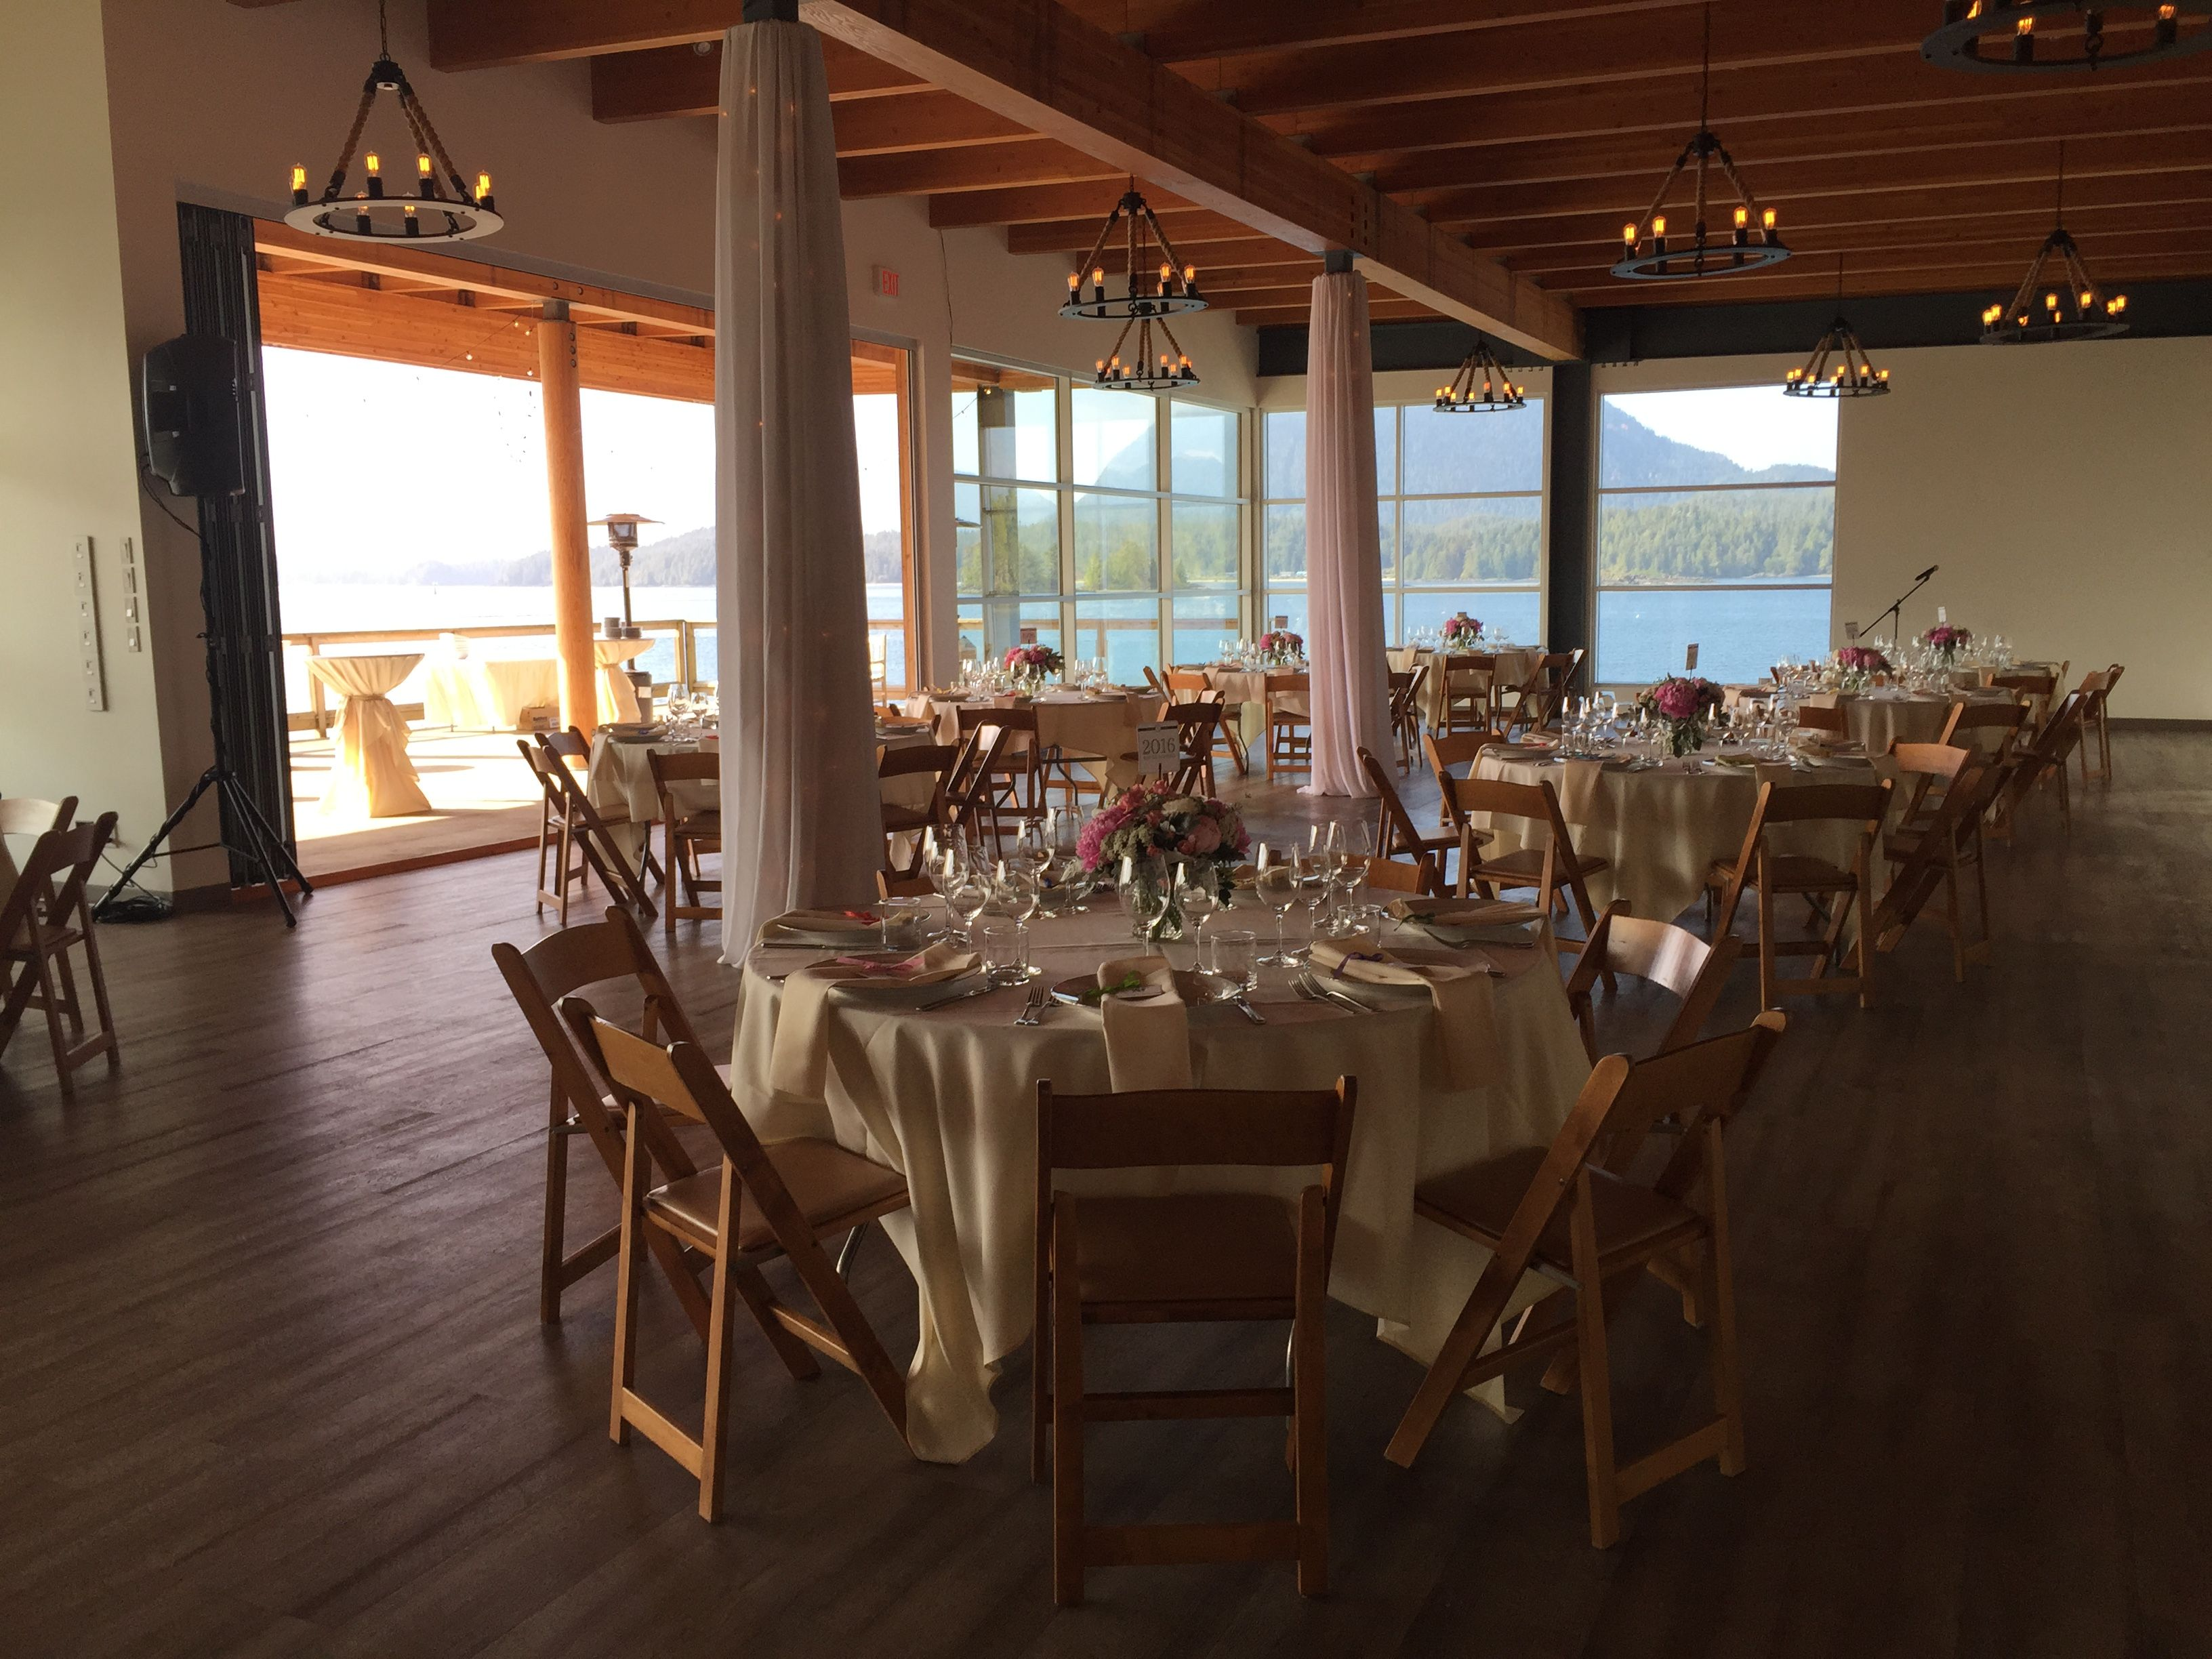 folding chair rental vancouver wedding reception without covers the shores tofino bc may 2015 island nanaimo diy venue drapes poles wood chairs ivory linens decor rentals